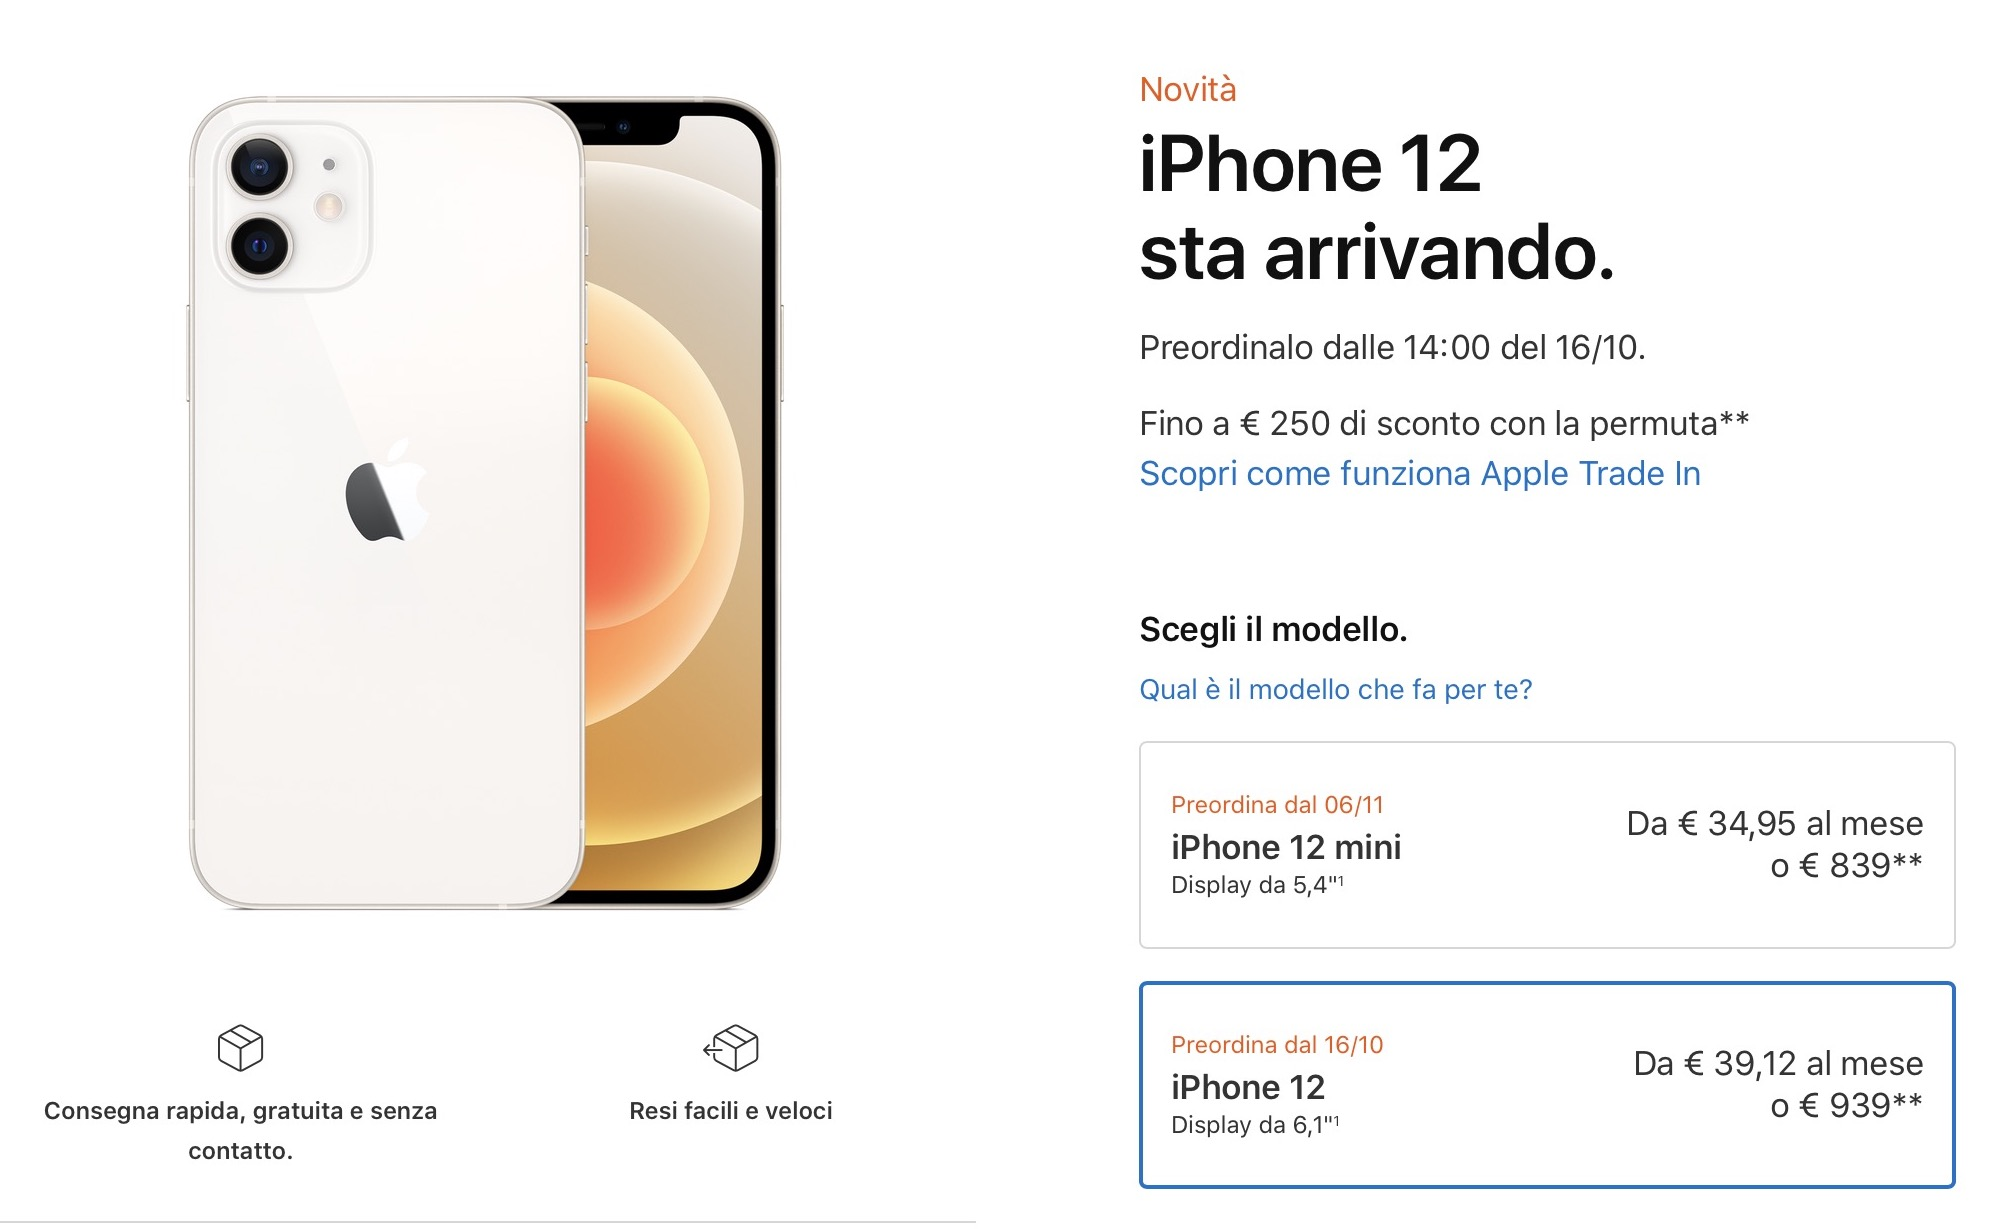 2 milioni di iPhone 12 ordinati in 24 ore